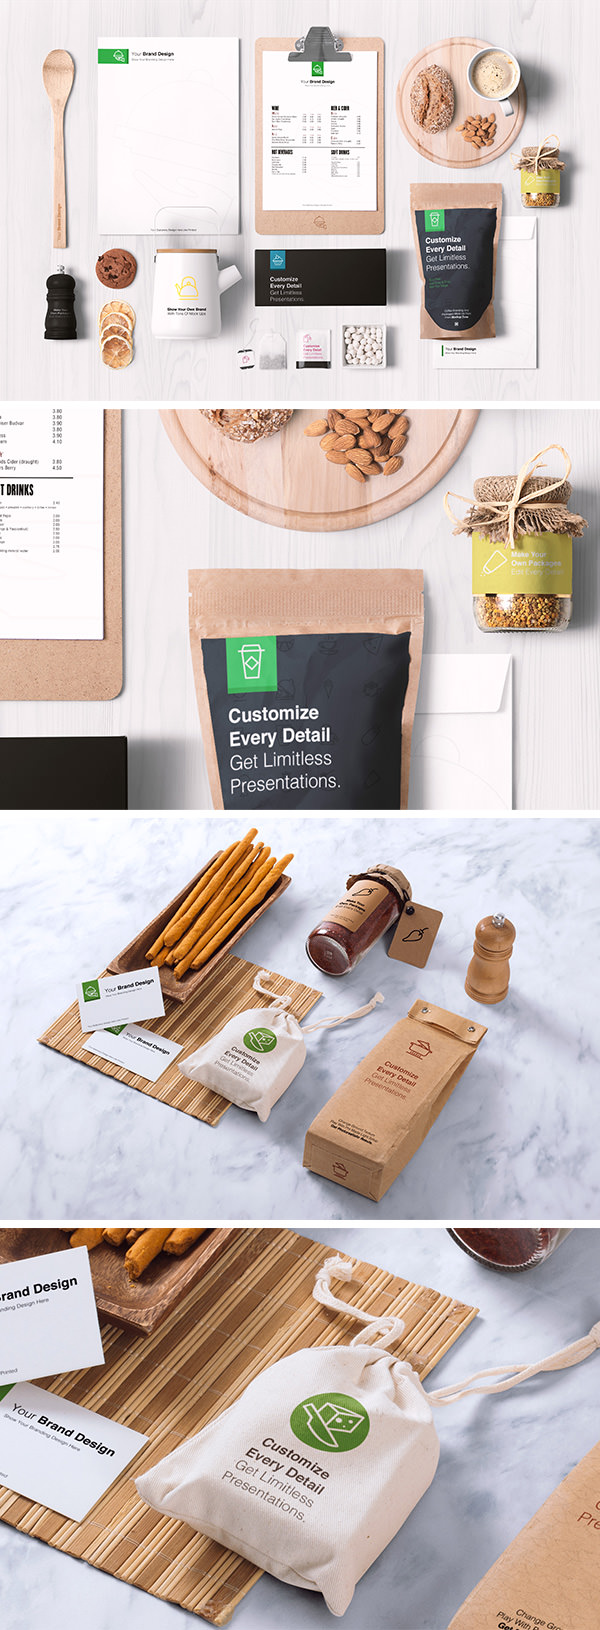 Download FREE 4+ Photorealistic Food Box Mockups in PSD | InDesign | AI